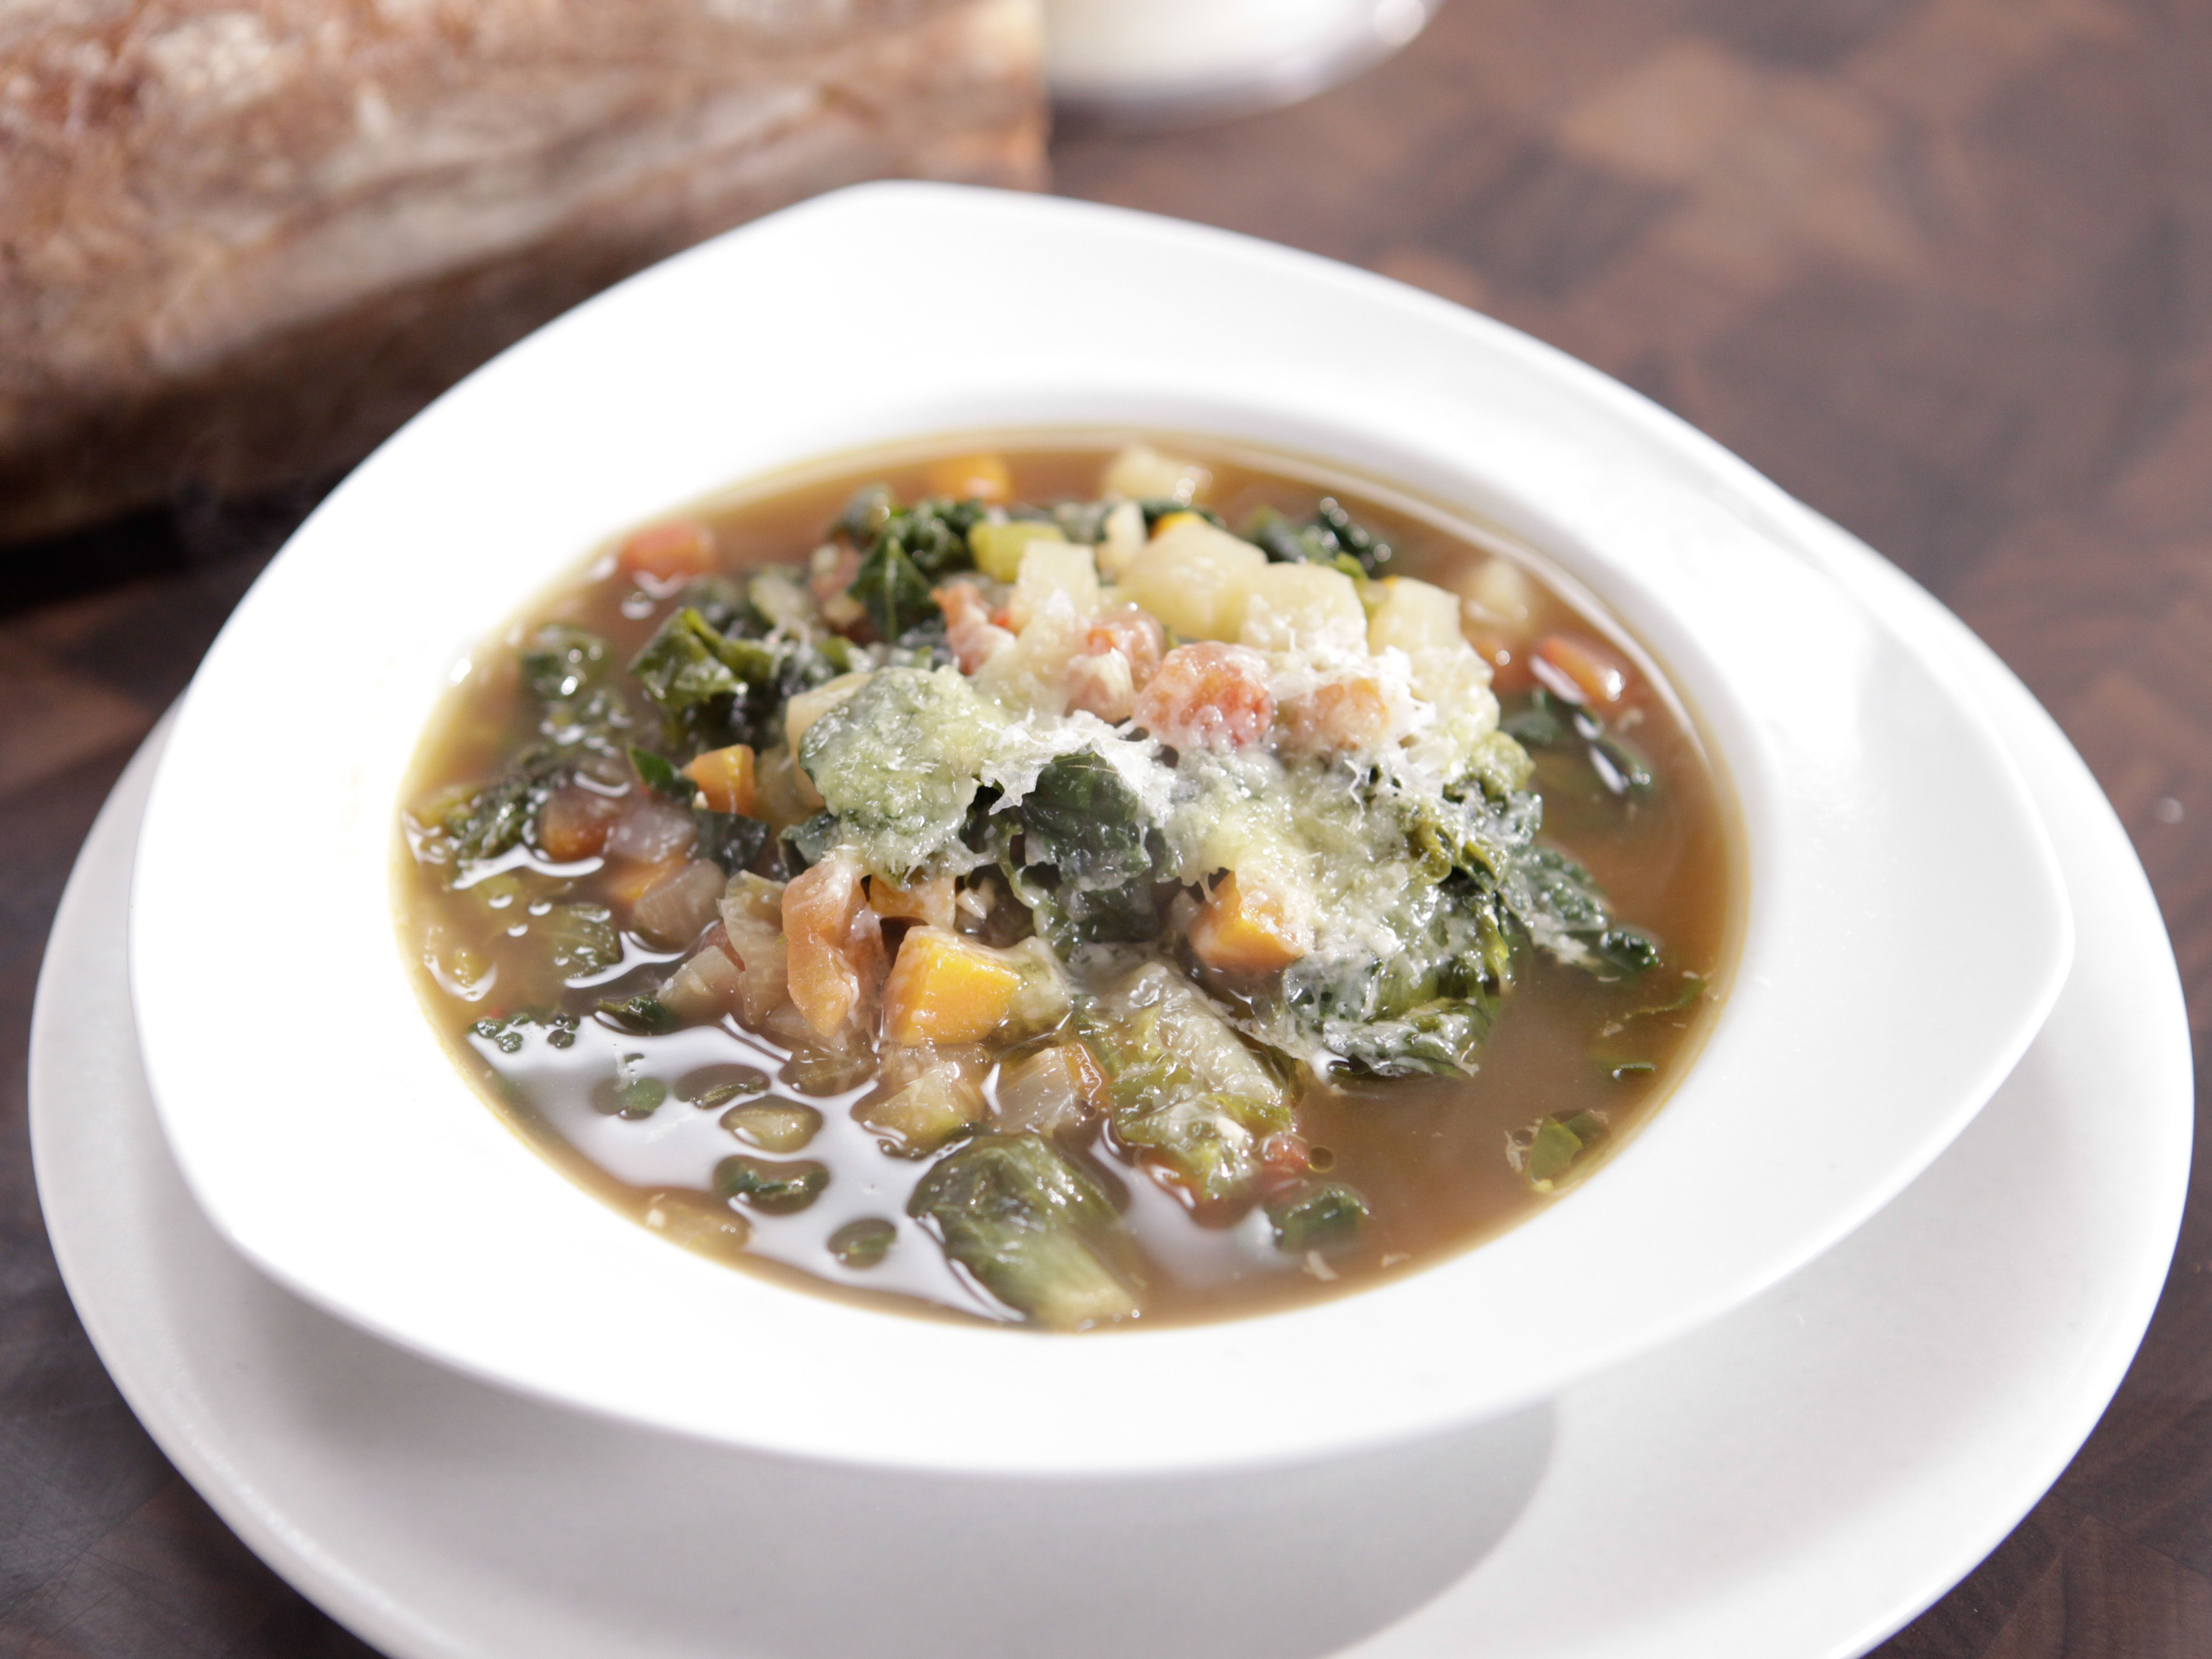 Vegetable soup with mixed greens recipe from rachael ray via food vegetable soup with mixed greens recipe from rachael ray via food network forumfinder Image collections